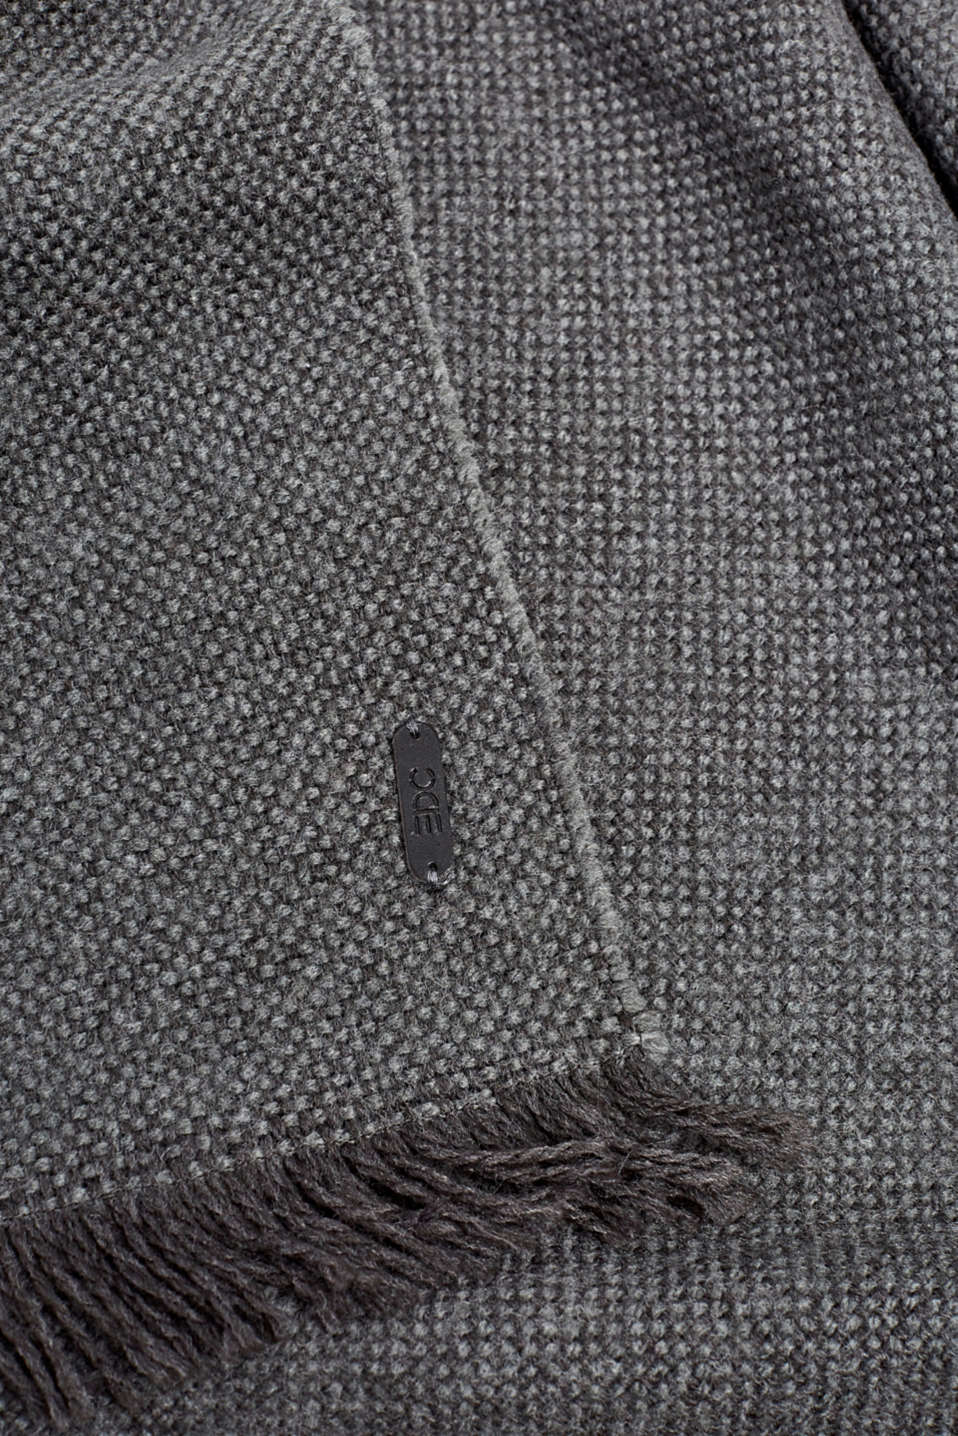 Scarf made of a chunkier woven fabric, GREY, detail image number 2